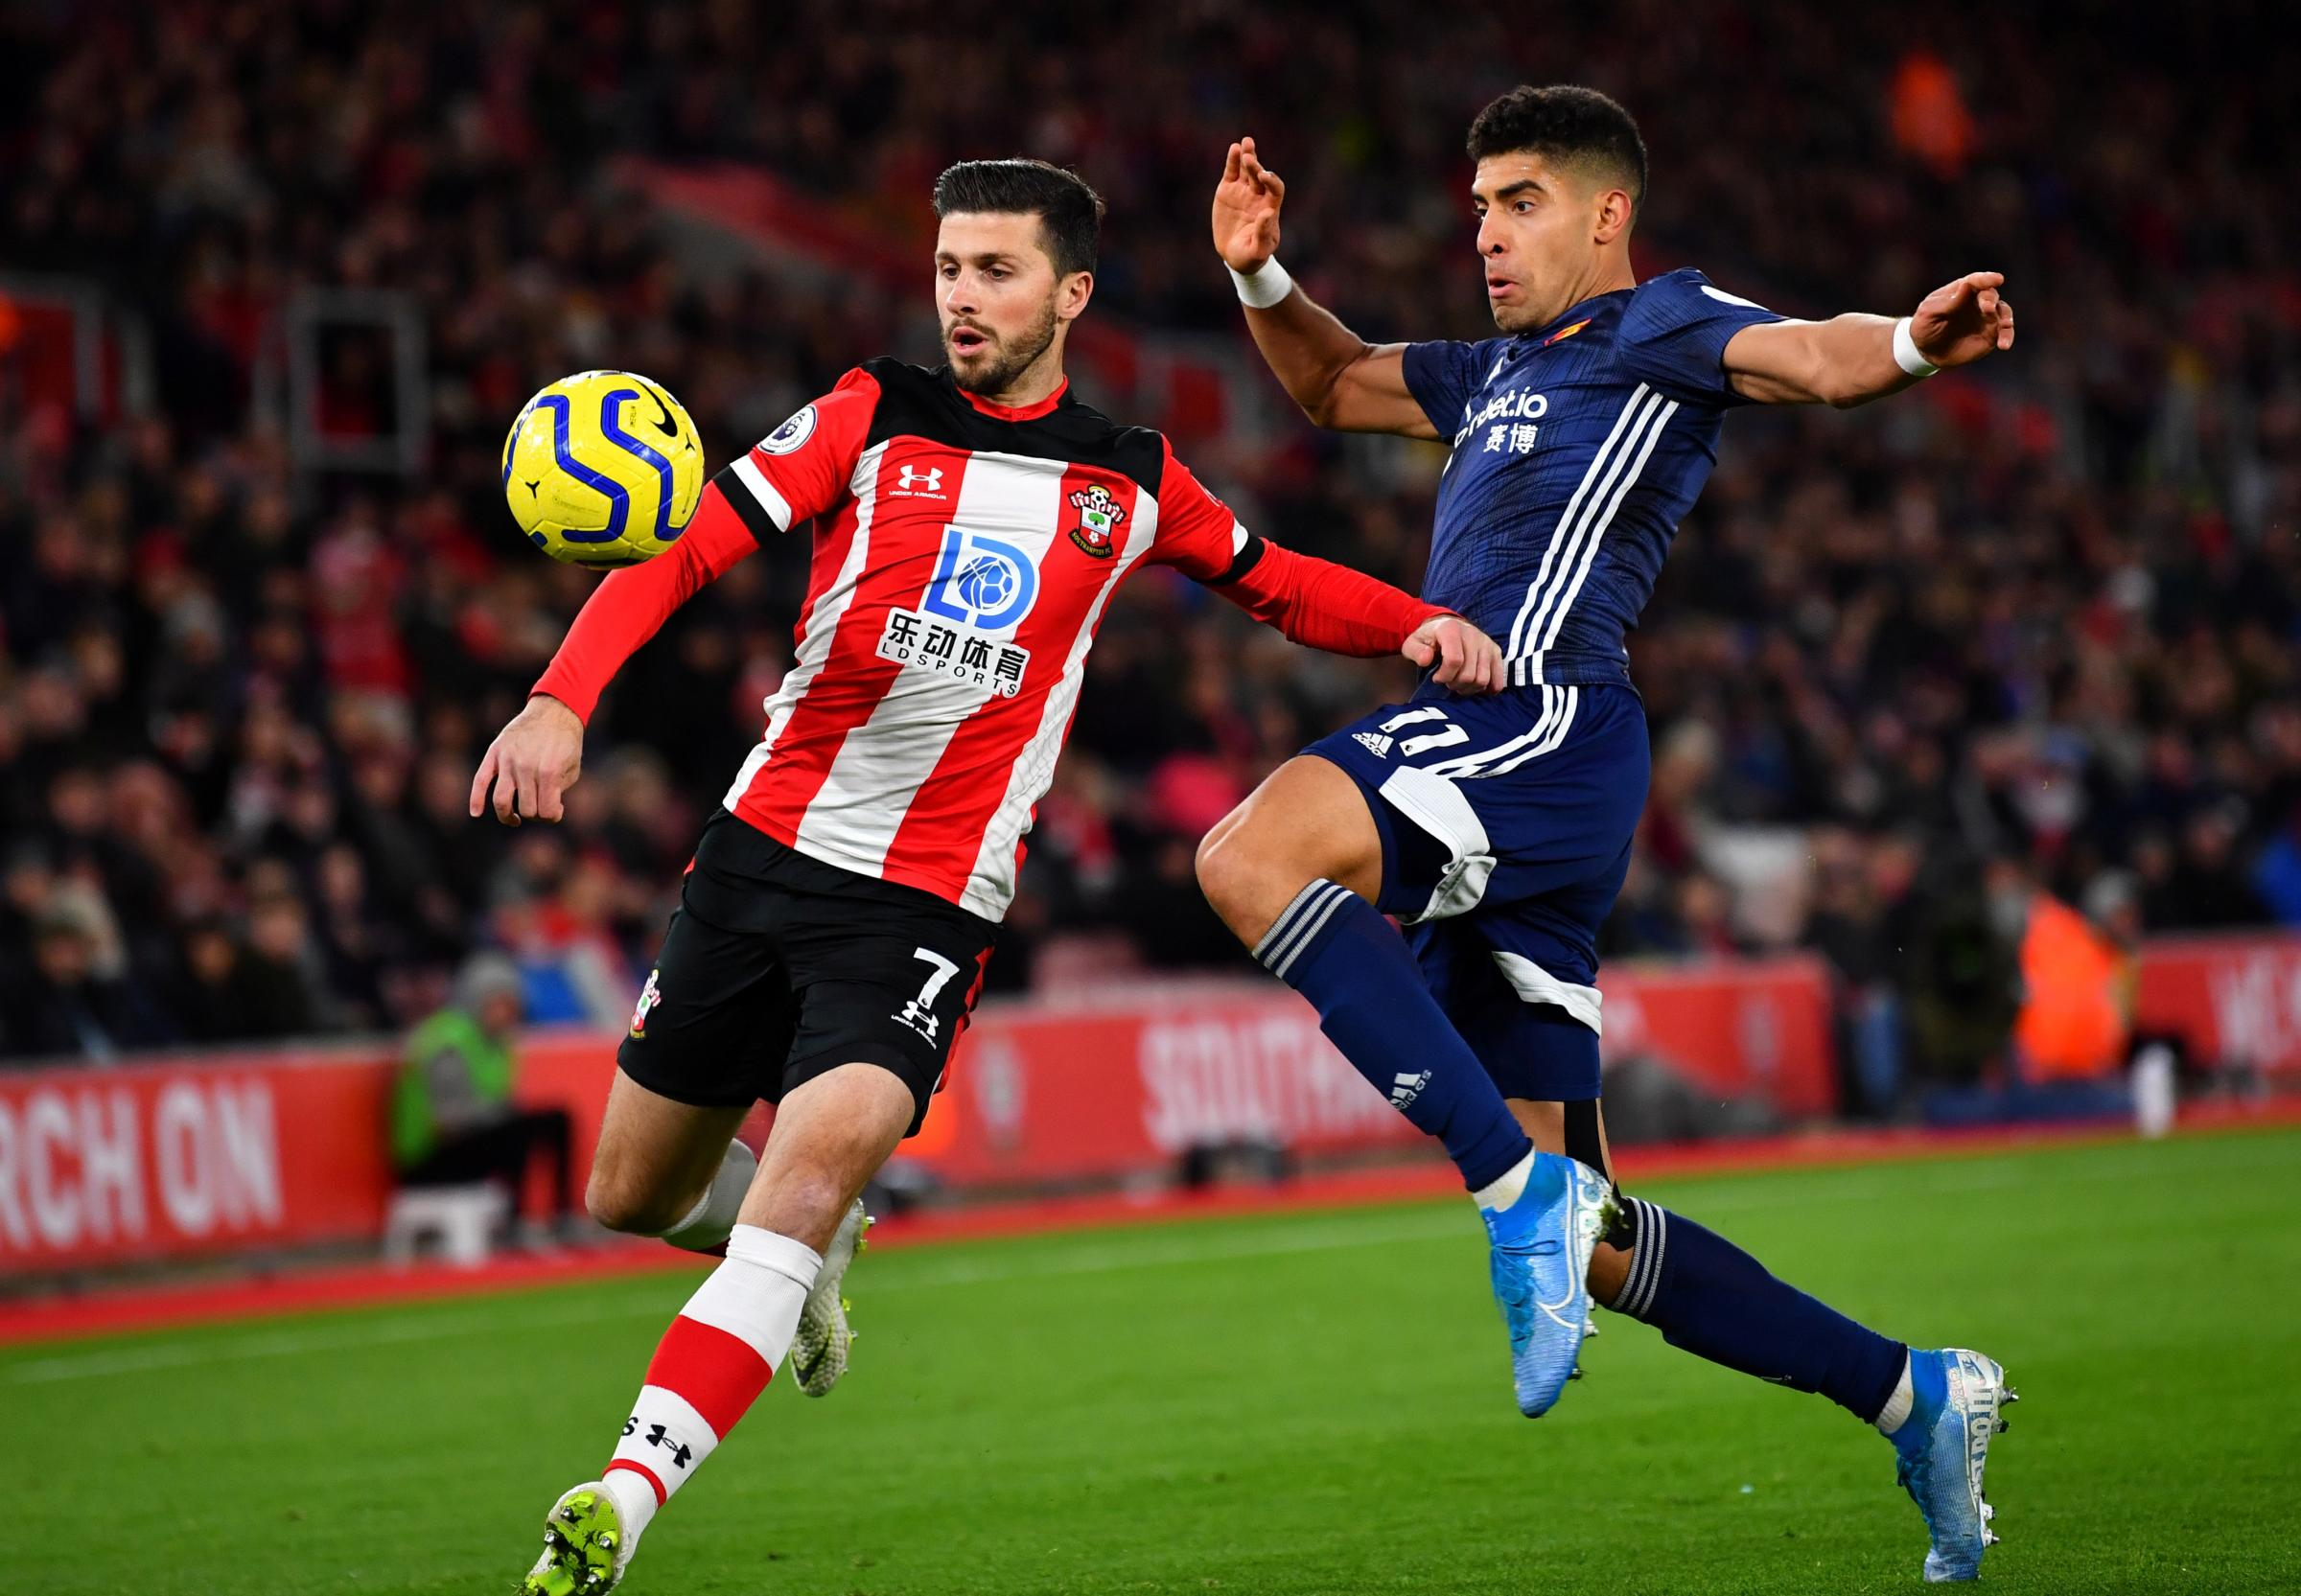 Premier League could be played daily before coronavirus restrictions are lifted claims Southampton chief executive Martin Semmens